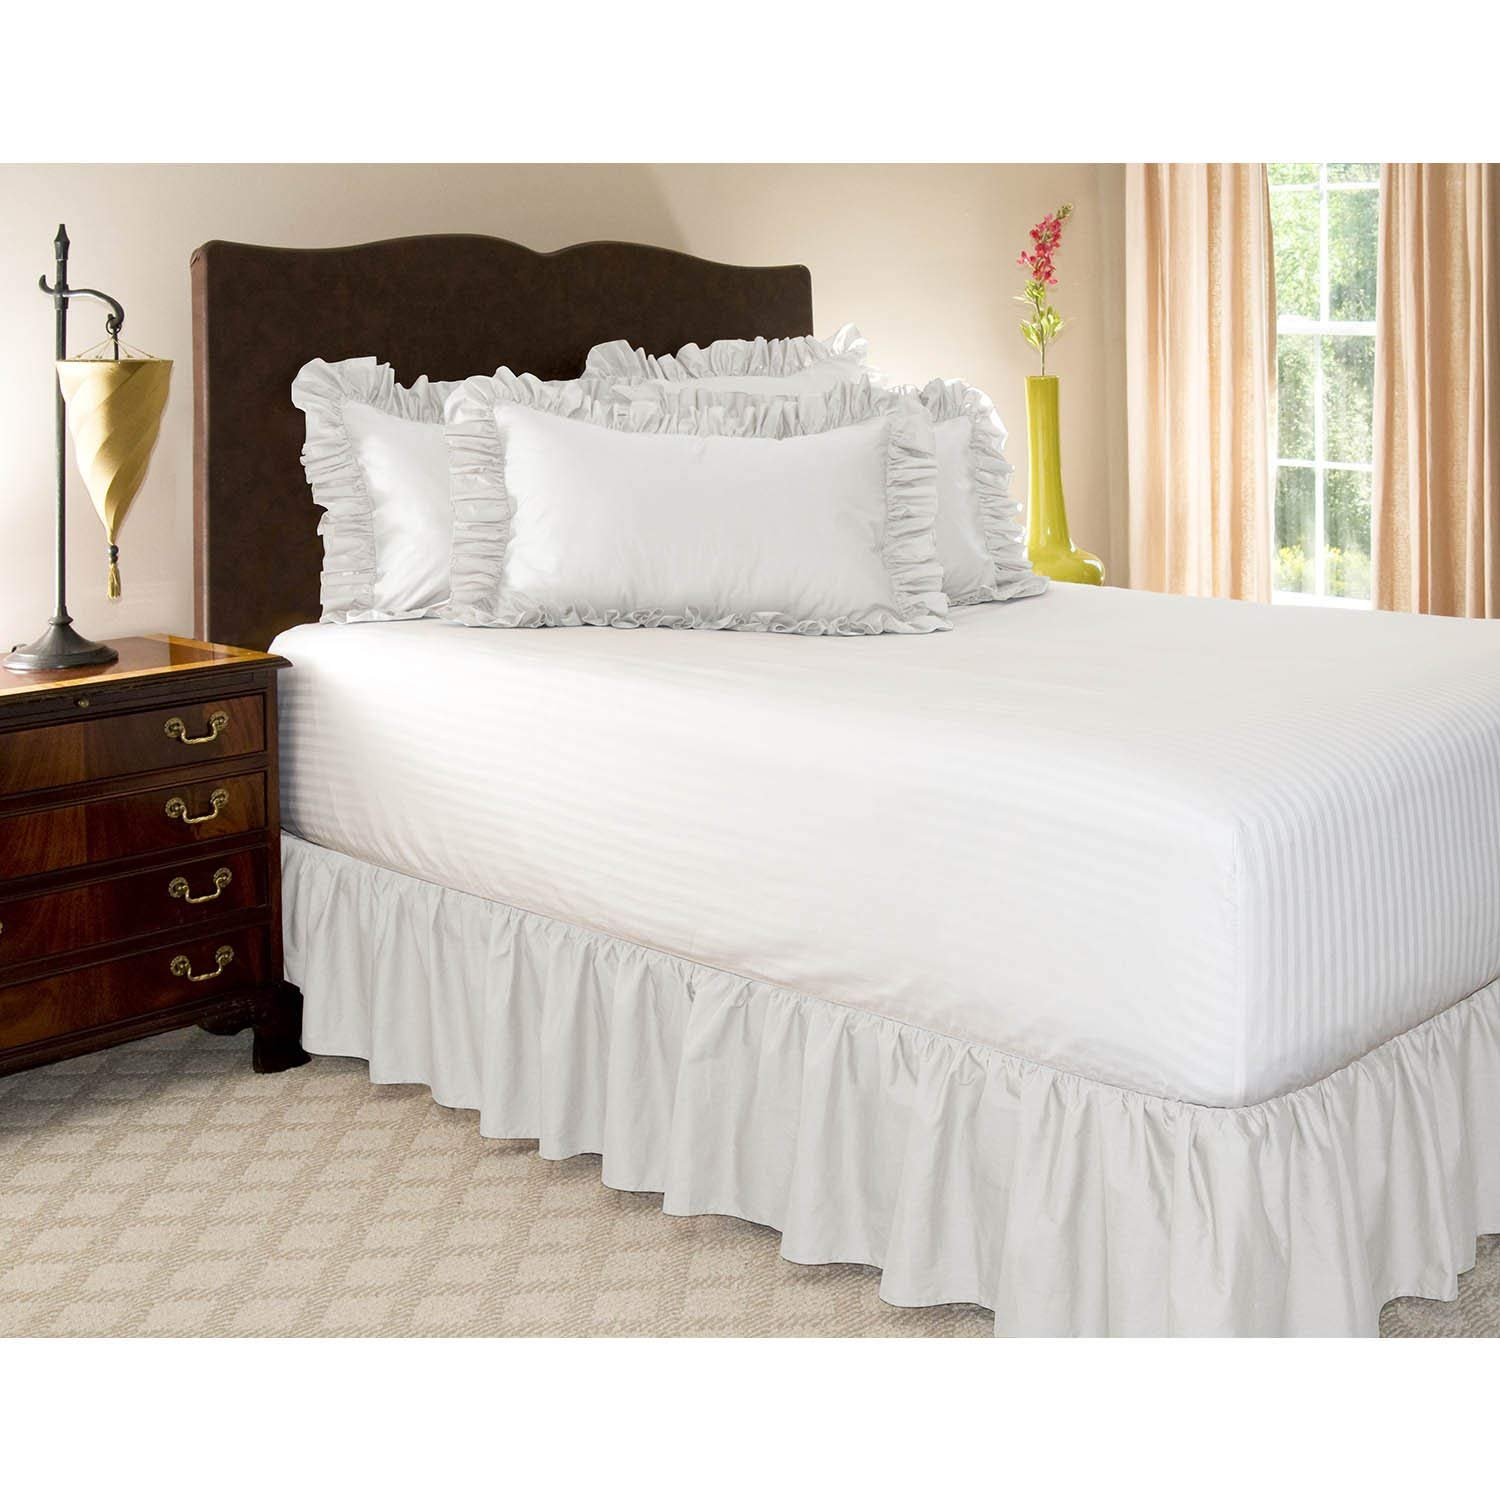 Image of: Use White Ruffle Bed Skirt